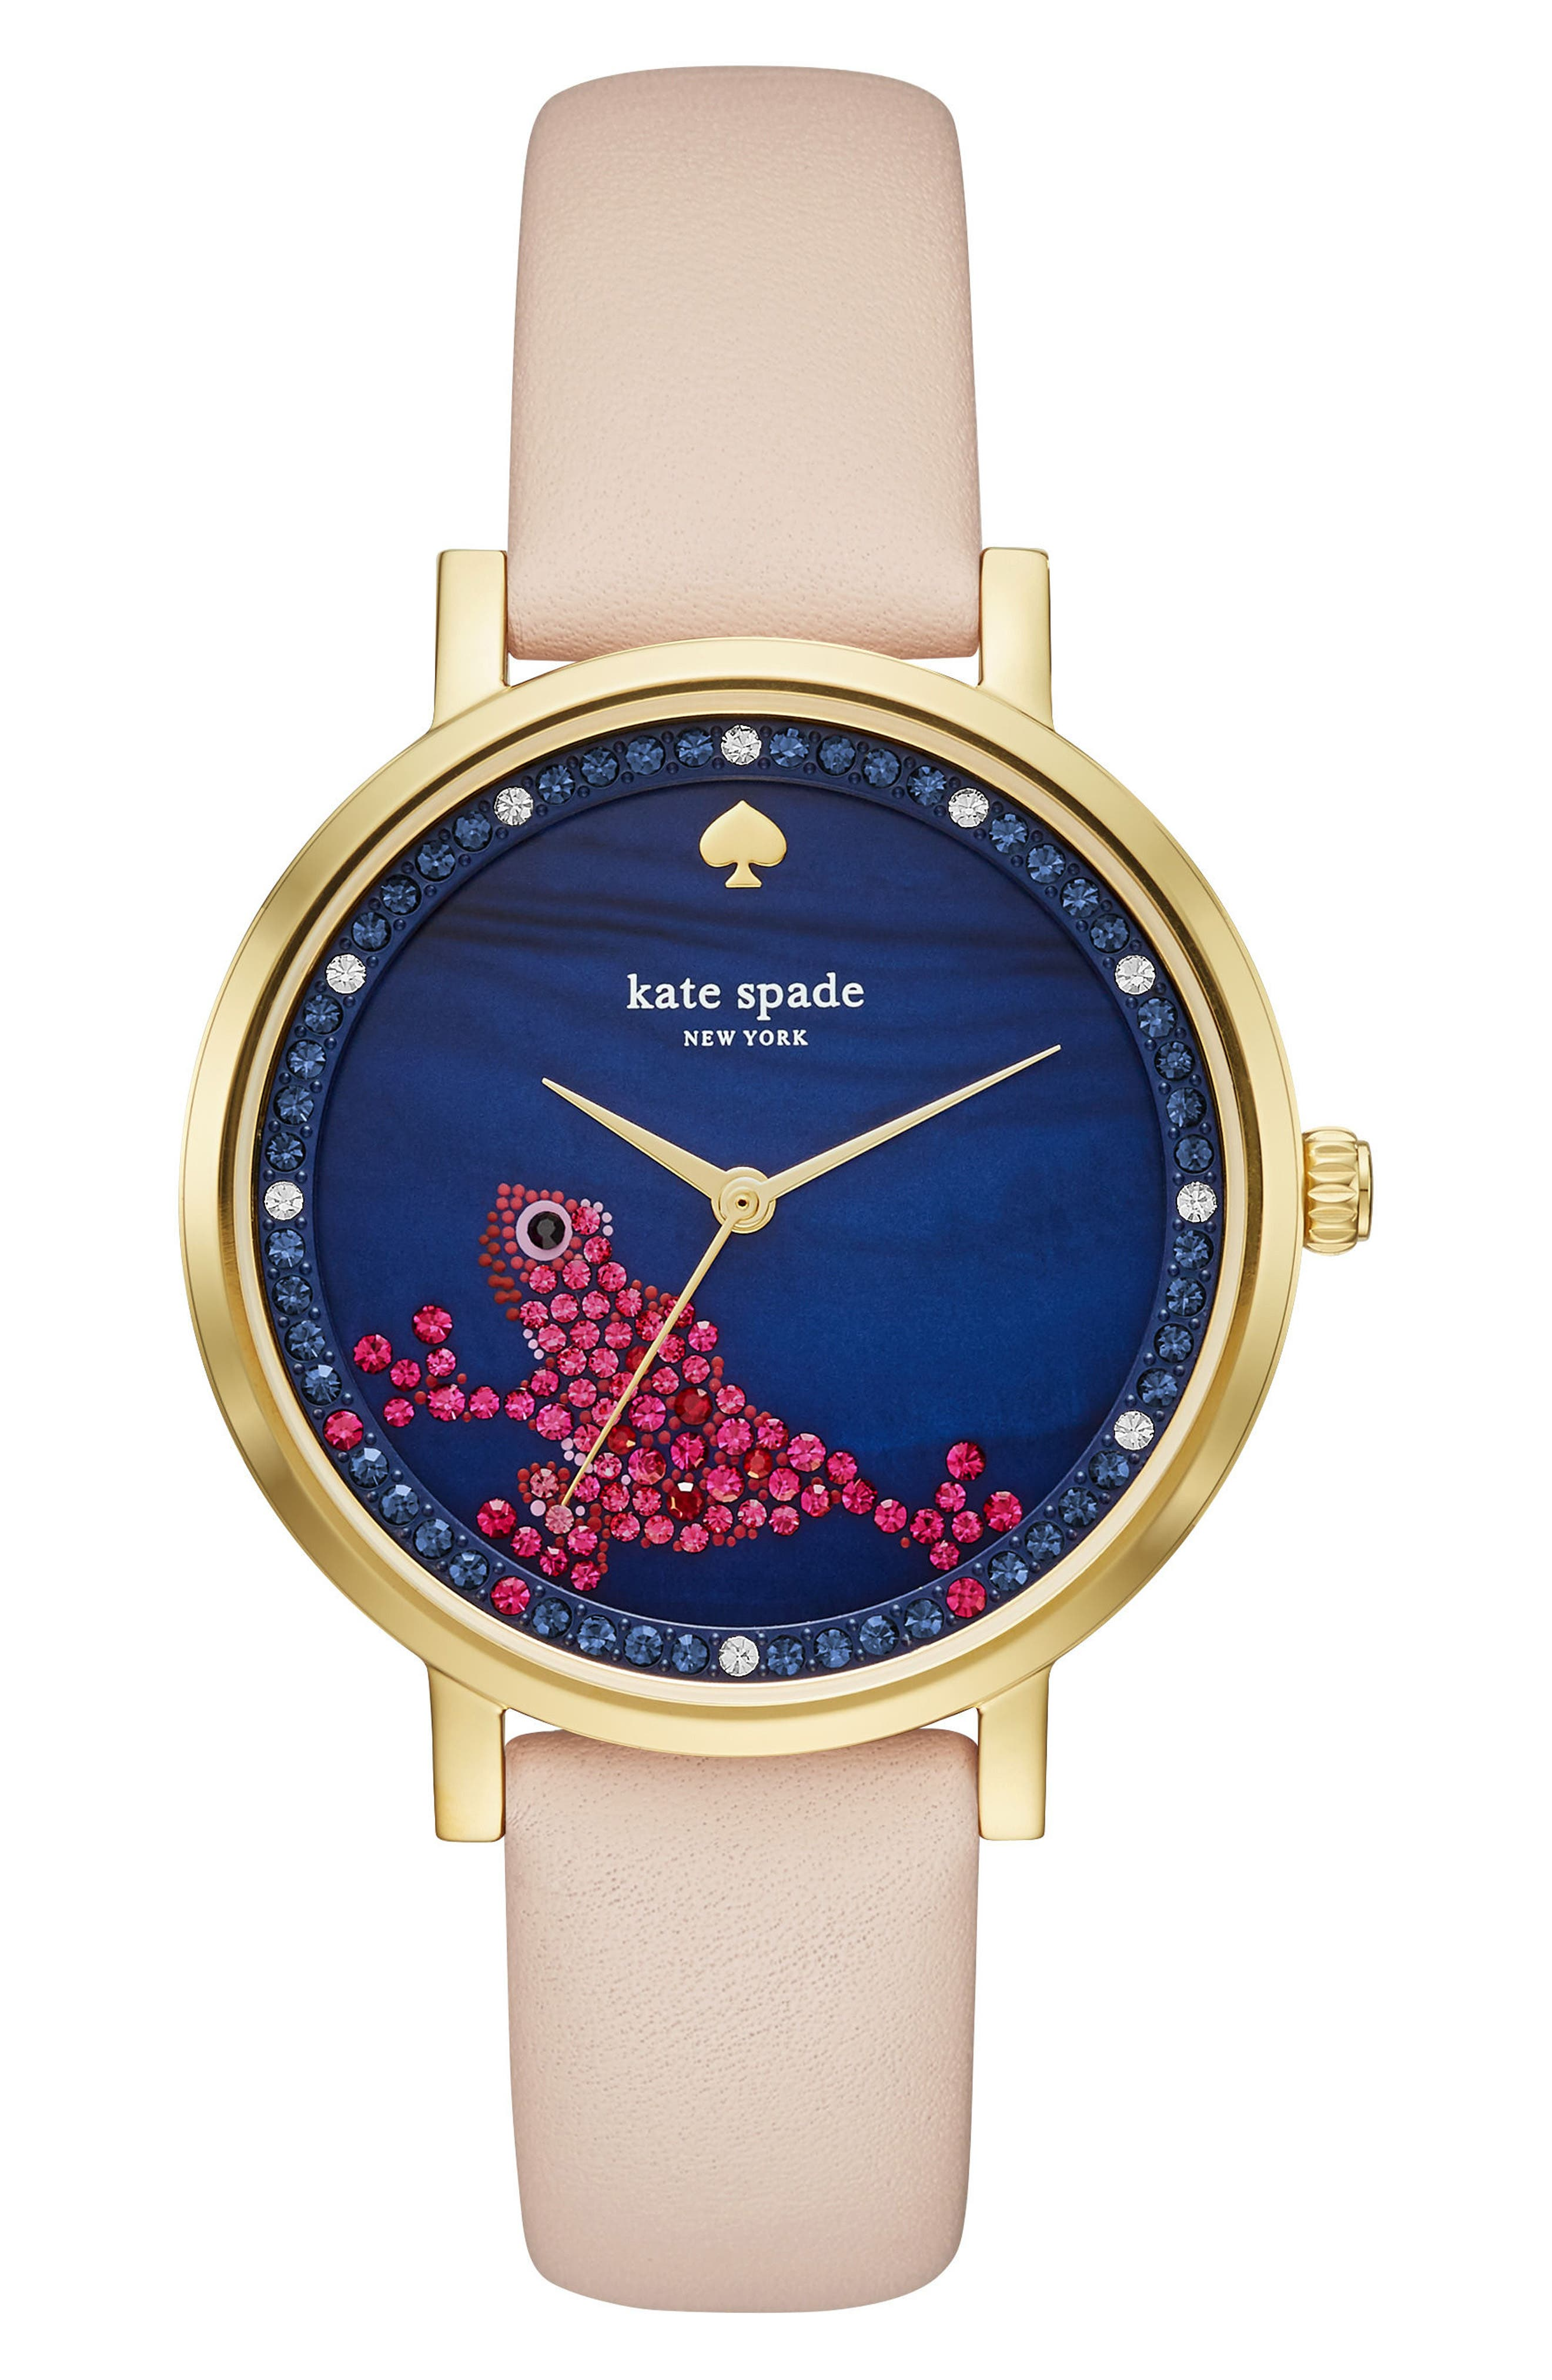 KATE SPADE NEW YORK monterey round leather strap watch, 38mm